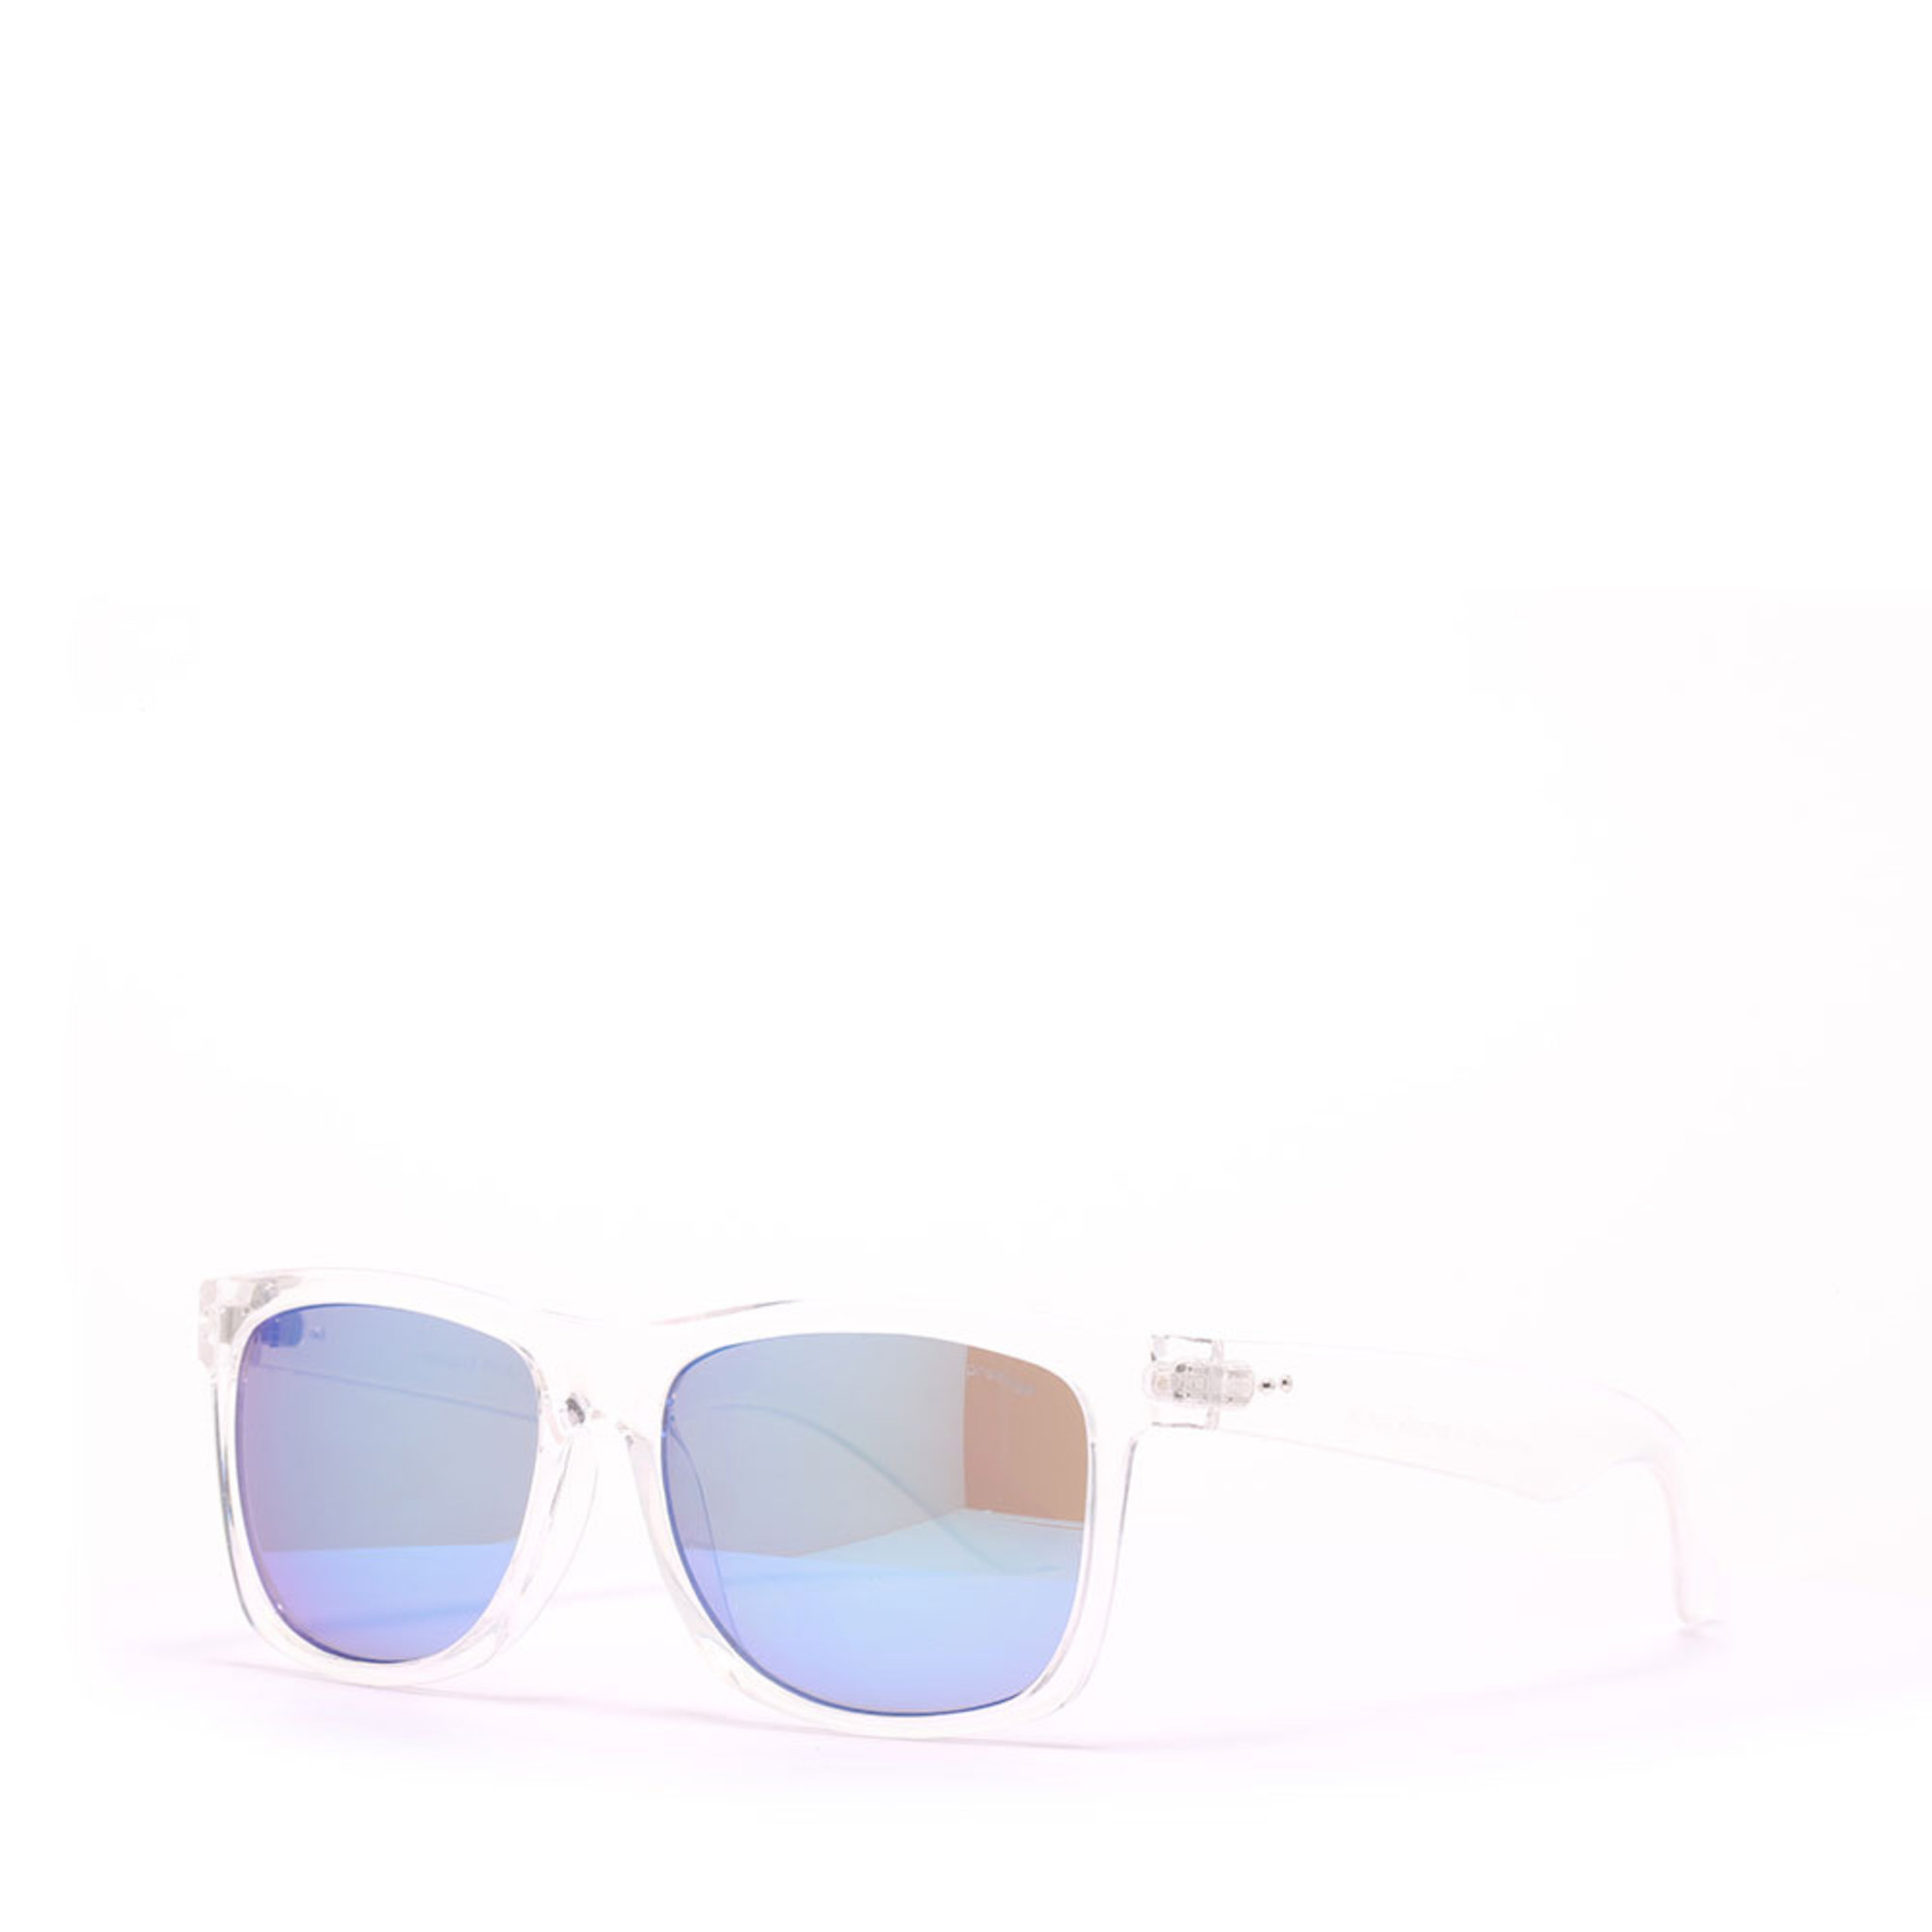 Stanley Clear Sunglasses